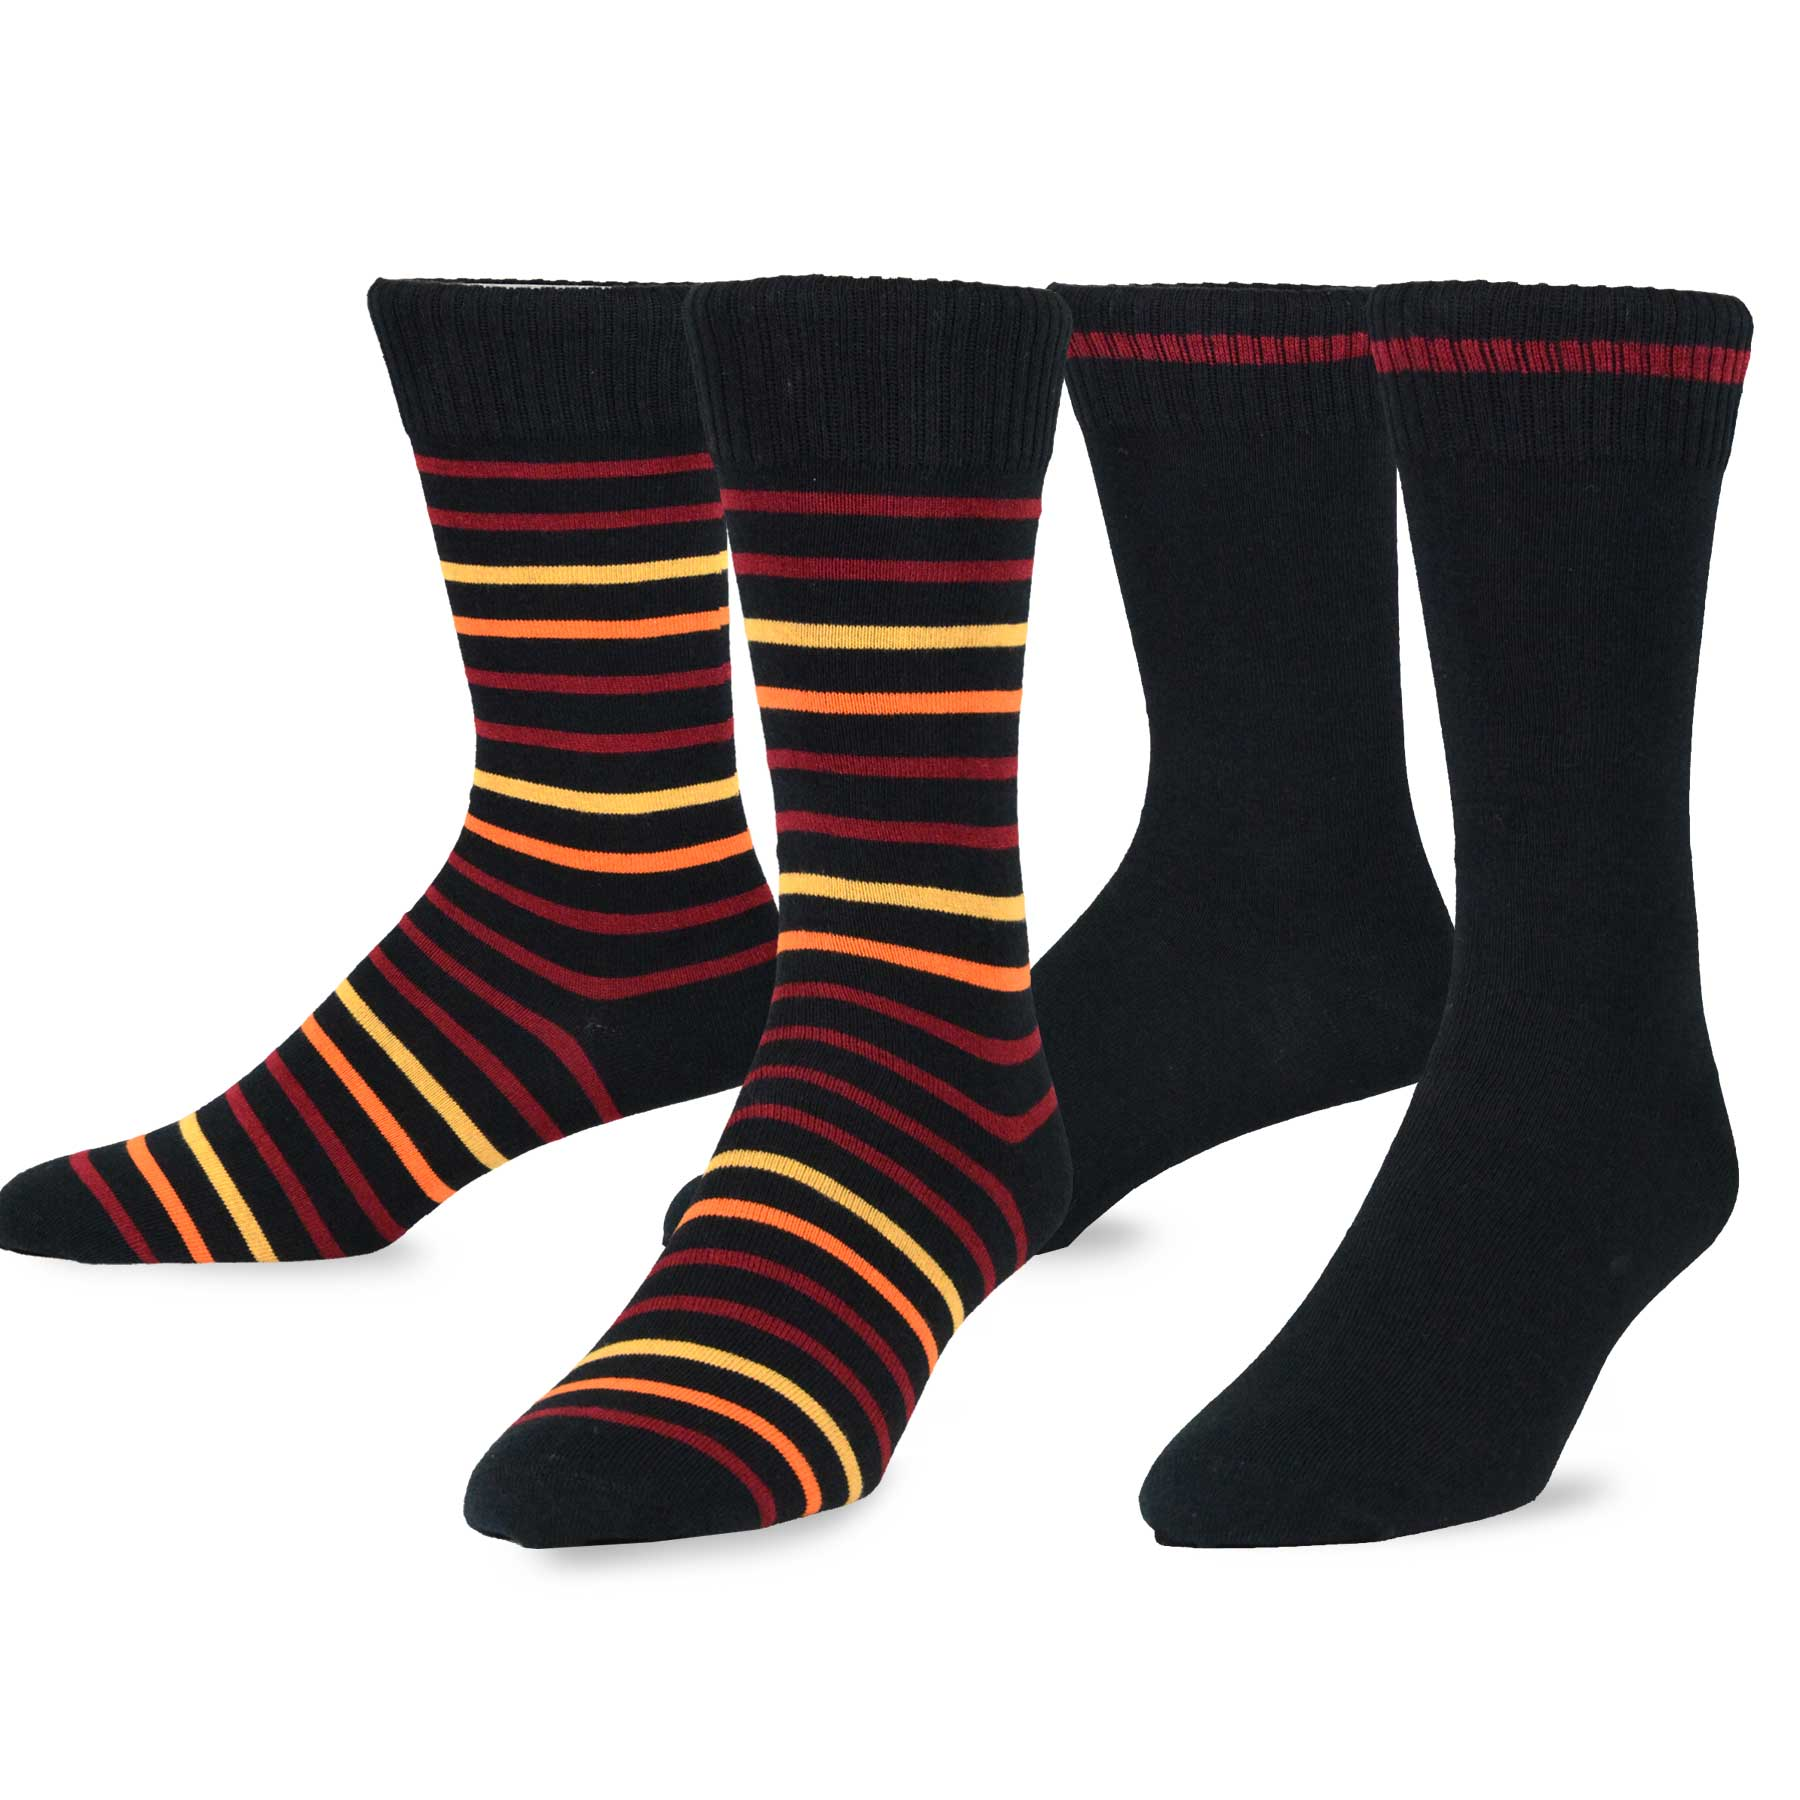 TeeHee  Combed Cotton Men's Crew Socks 2-pair Pack Narrow Stripes & Plain